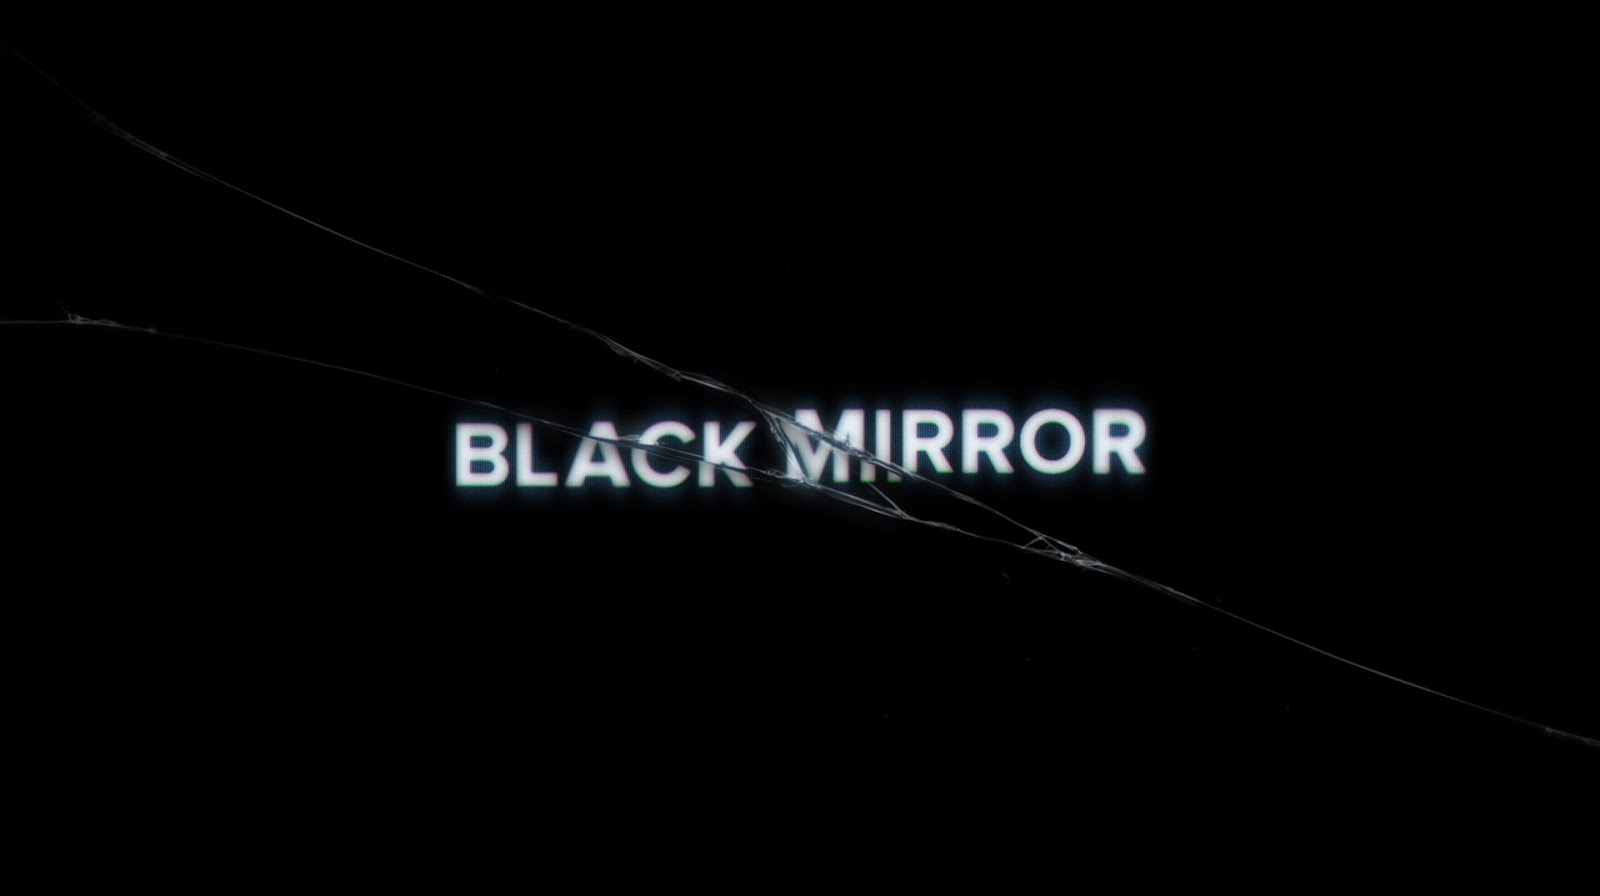 Black-Mirror-Logo.jpg